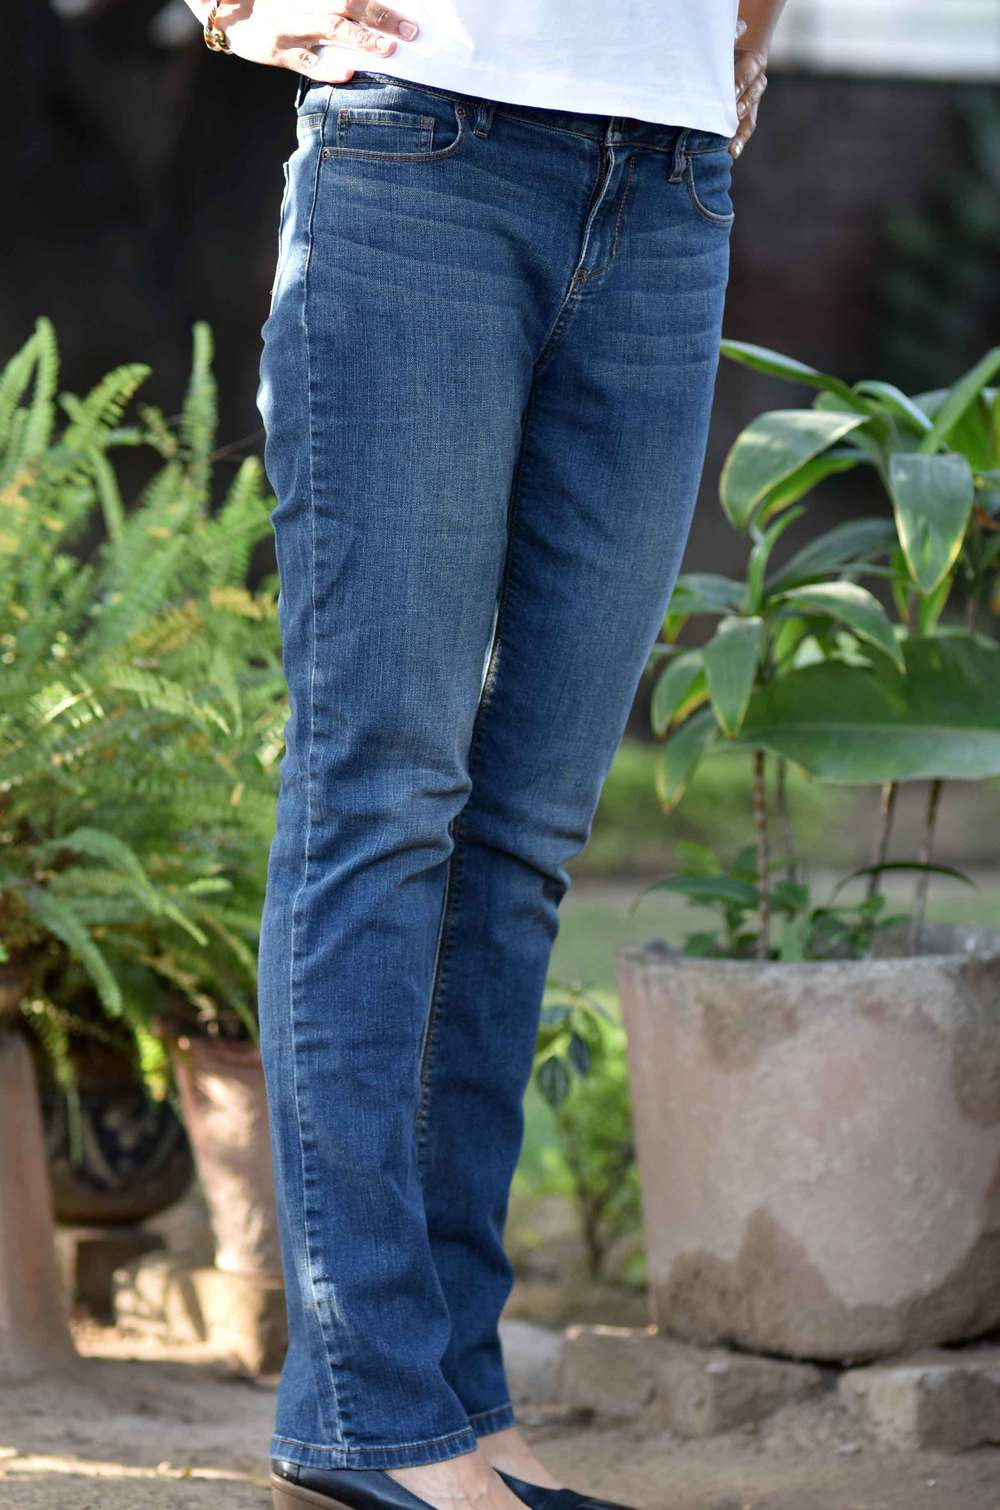 The JJill Authentic Fit Slim Leg Jeans, image©gunjanvirk.